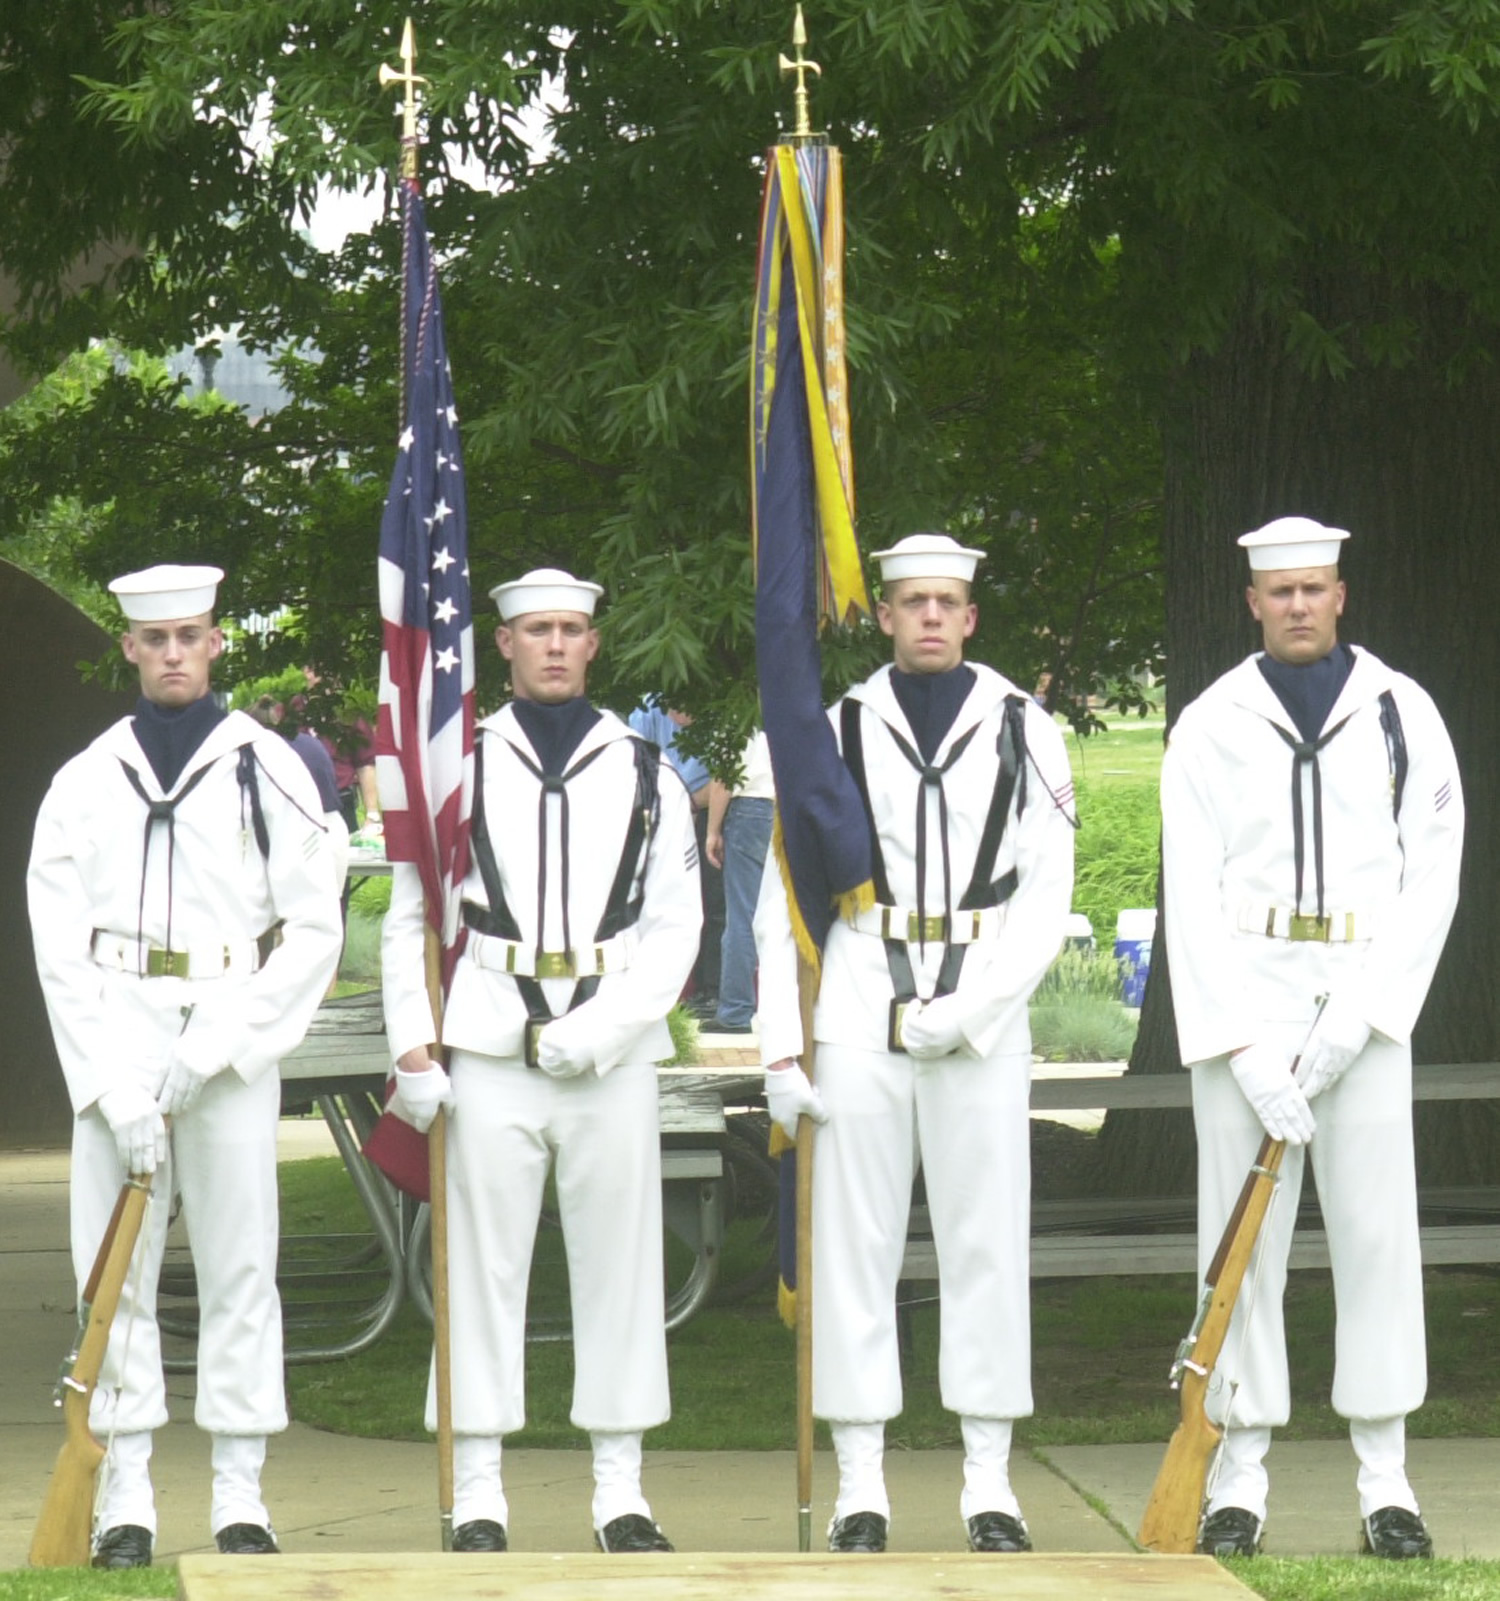 Uss Constitution Or The Ceremonial Guard Duty Navydep - Us-navy-ceremonial-guard